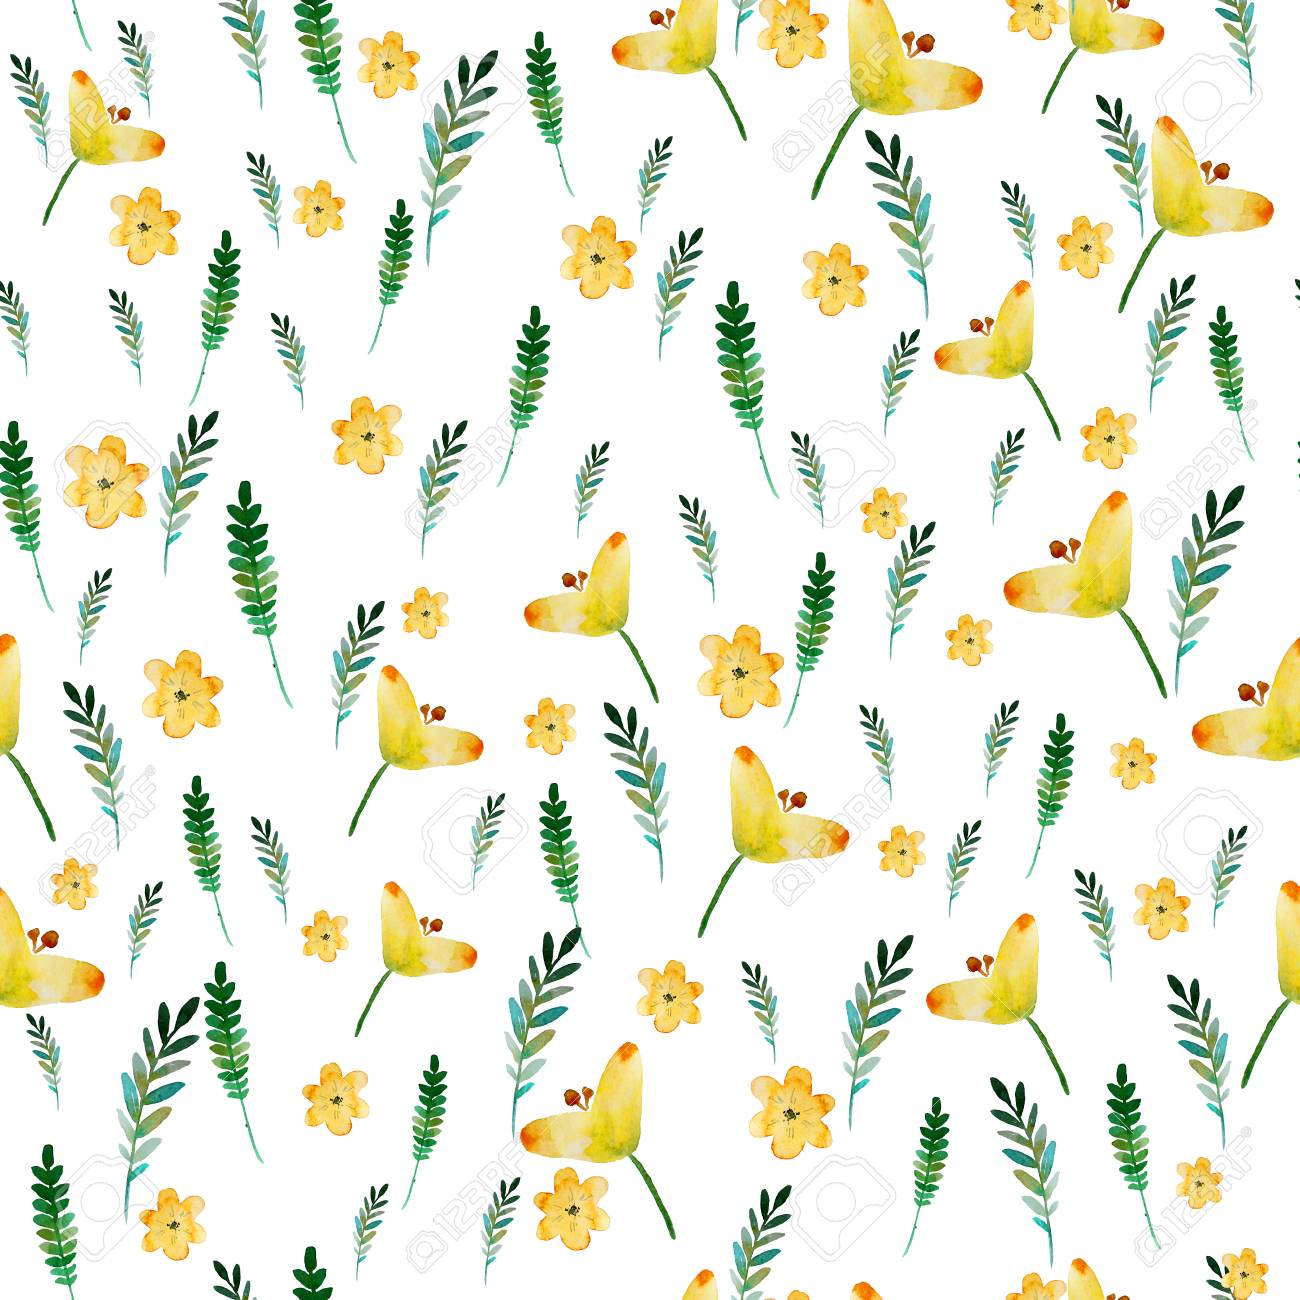 Seamless Floral Pattern With Watercolor Yellow Flowers And Leaves